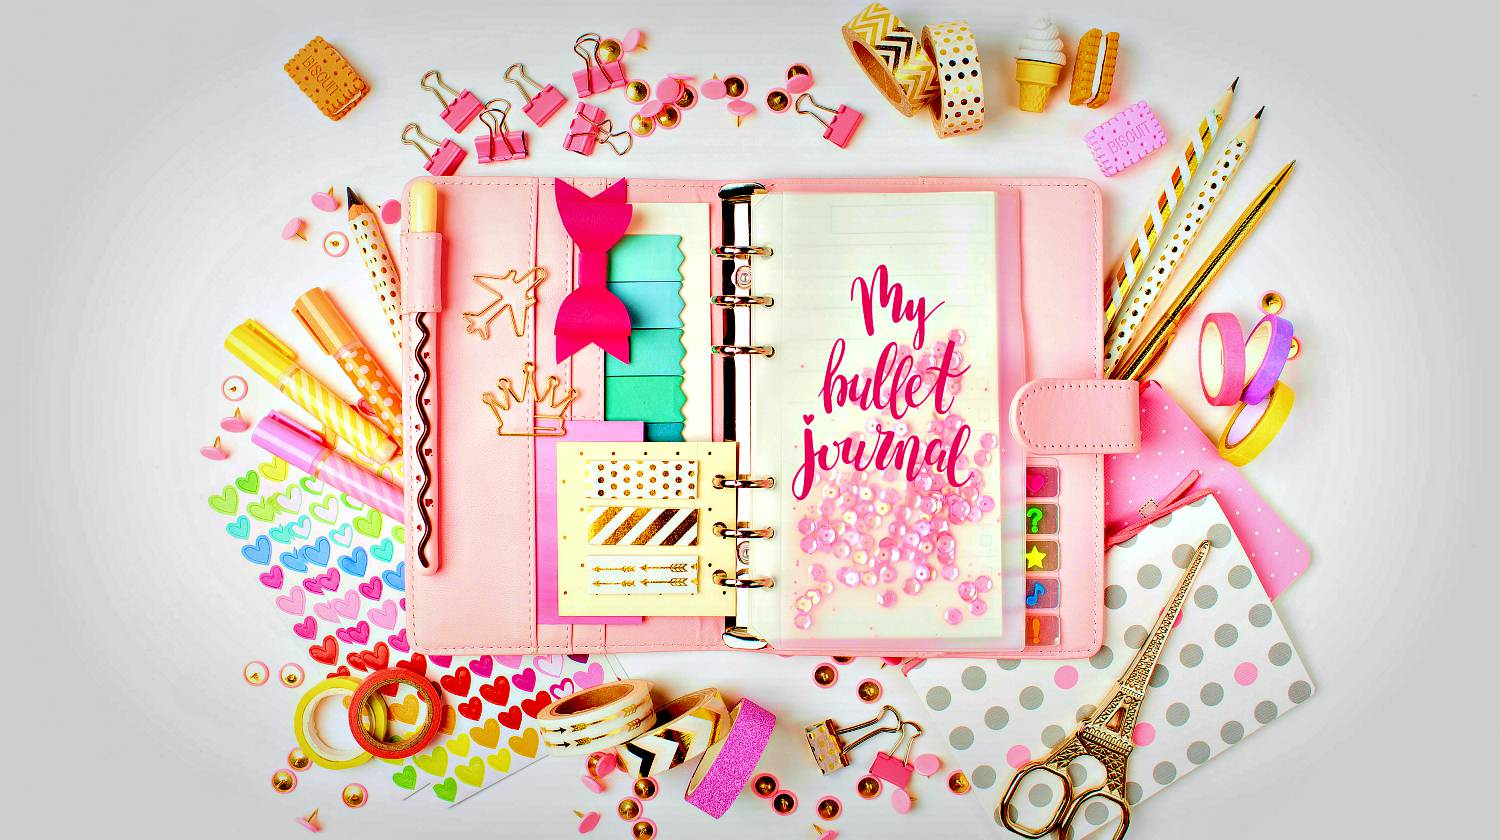 Feature | washi tape bullet journal | Washi Tape Ideas | 100 Creative Ways To Use Washi Tape